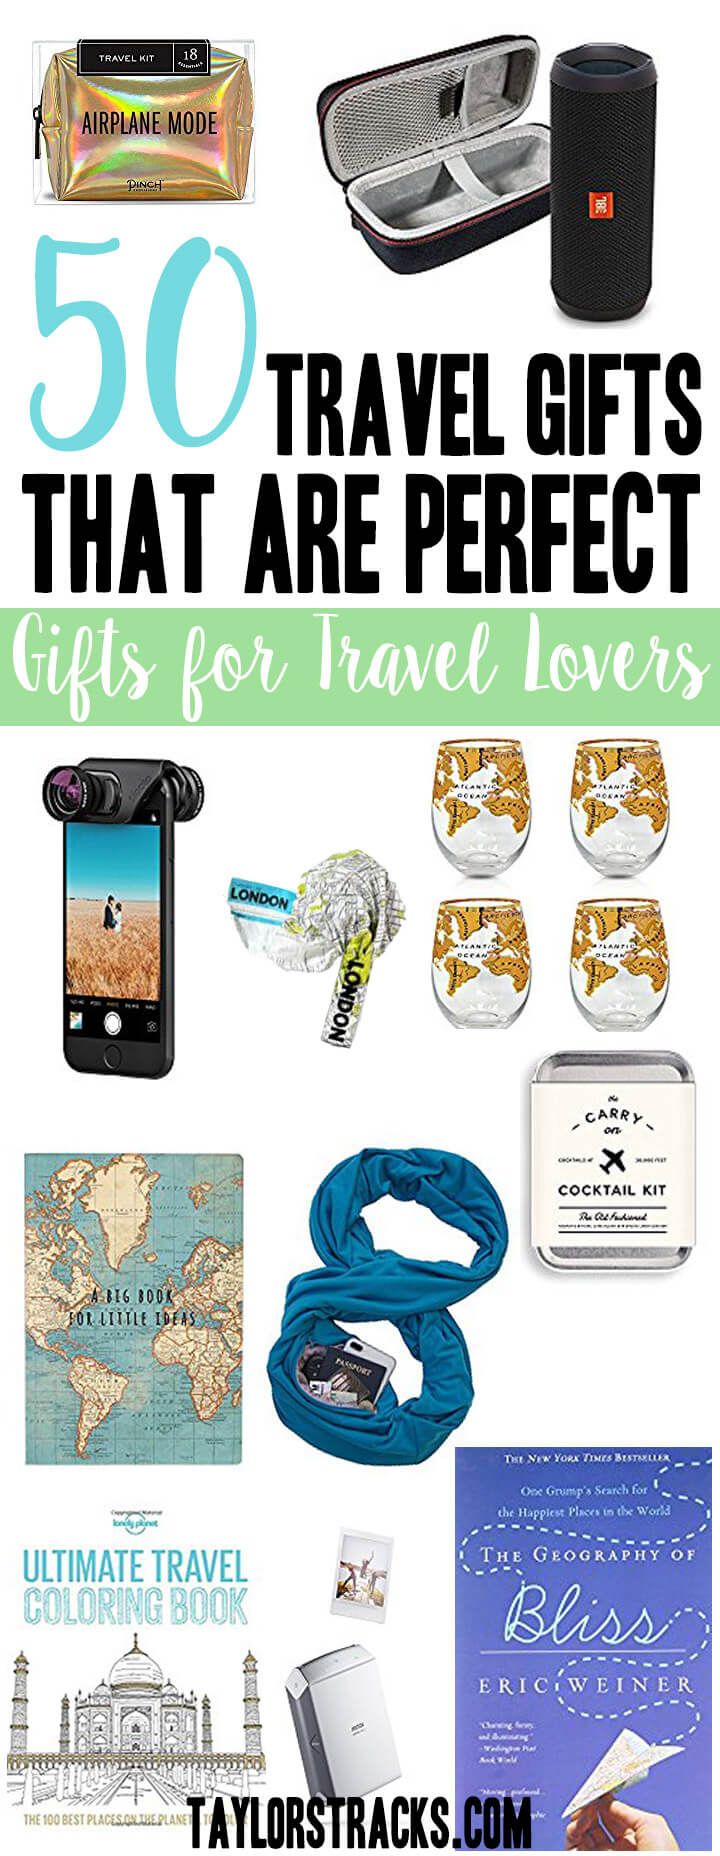 Travel gift ideas | Travel gifts | Travel gift ideas for him | Travel gift ideas for women | Travel present | Travel present ideas